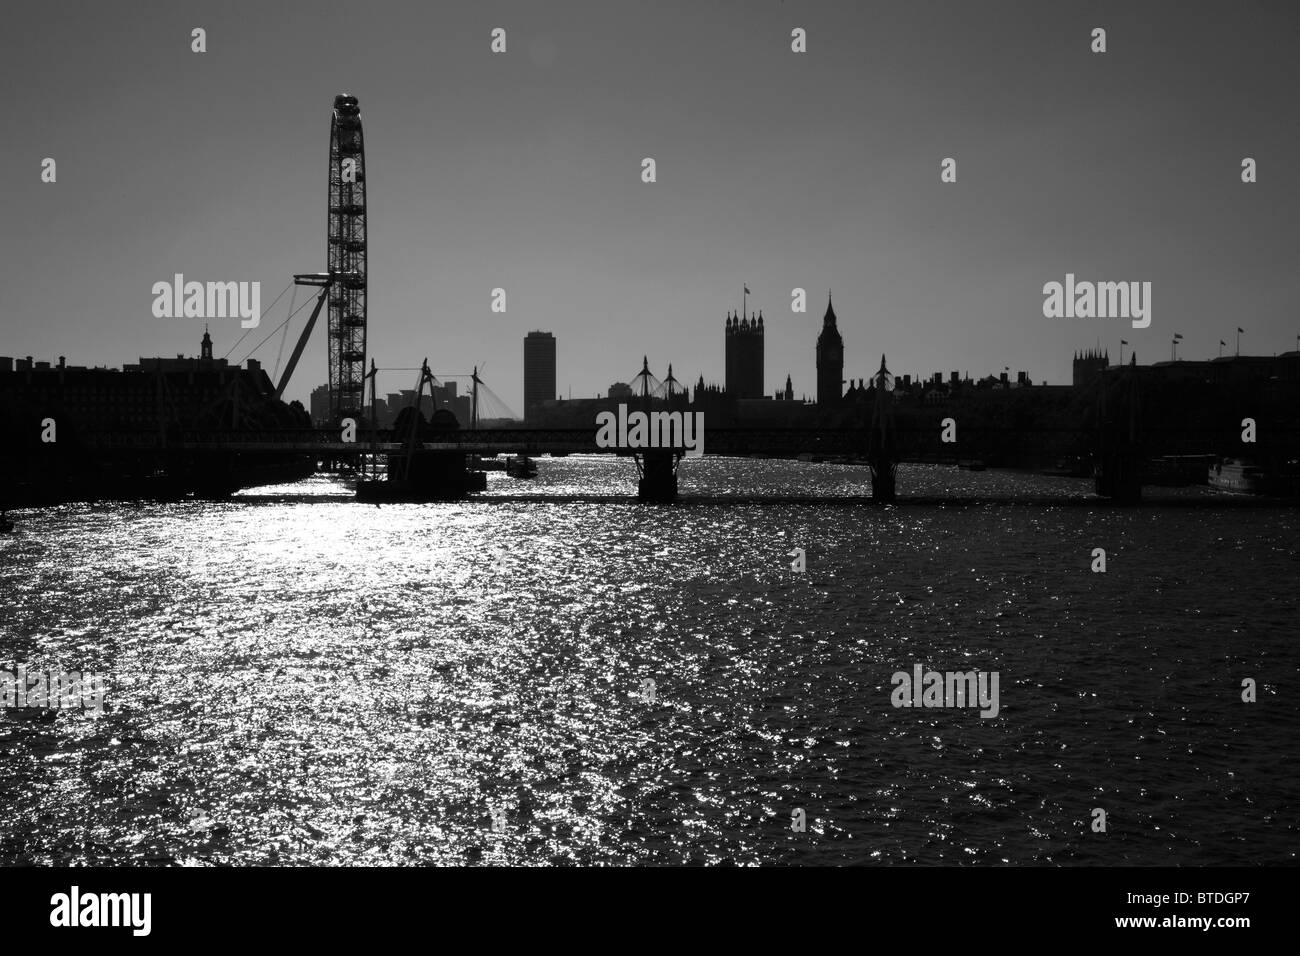 View up the River Thames to Hungerford Bridge, London Eye and Houses of Parliament, Westminster, London, UK - Stock Image